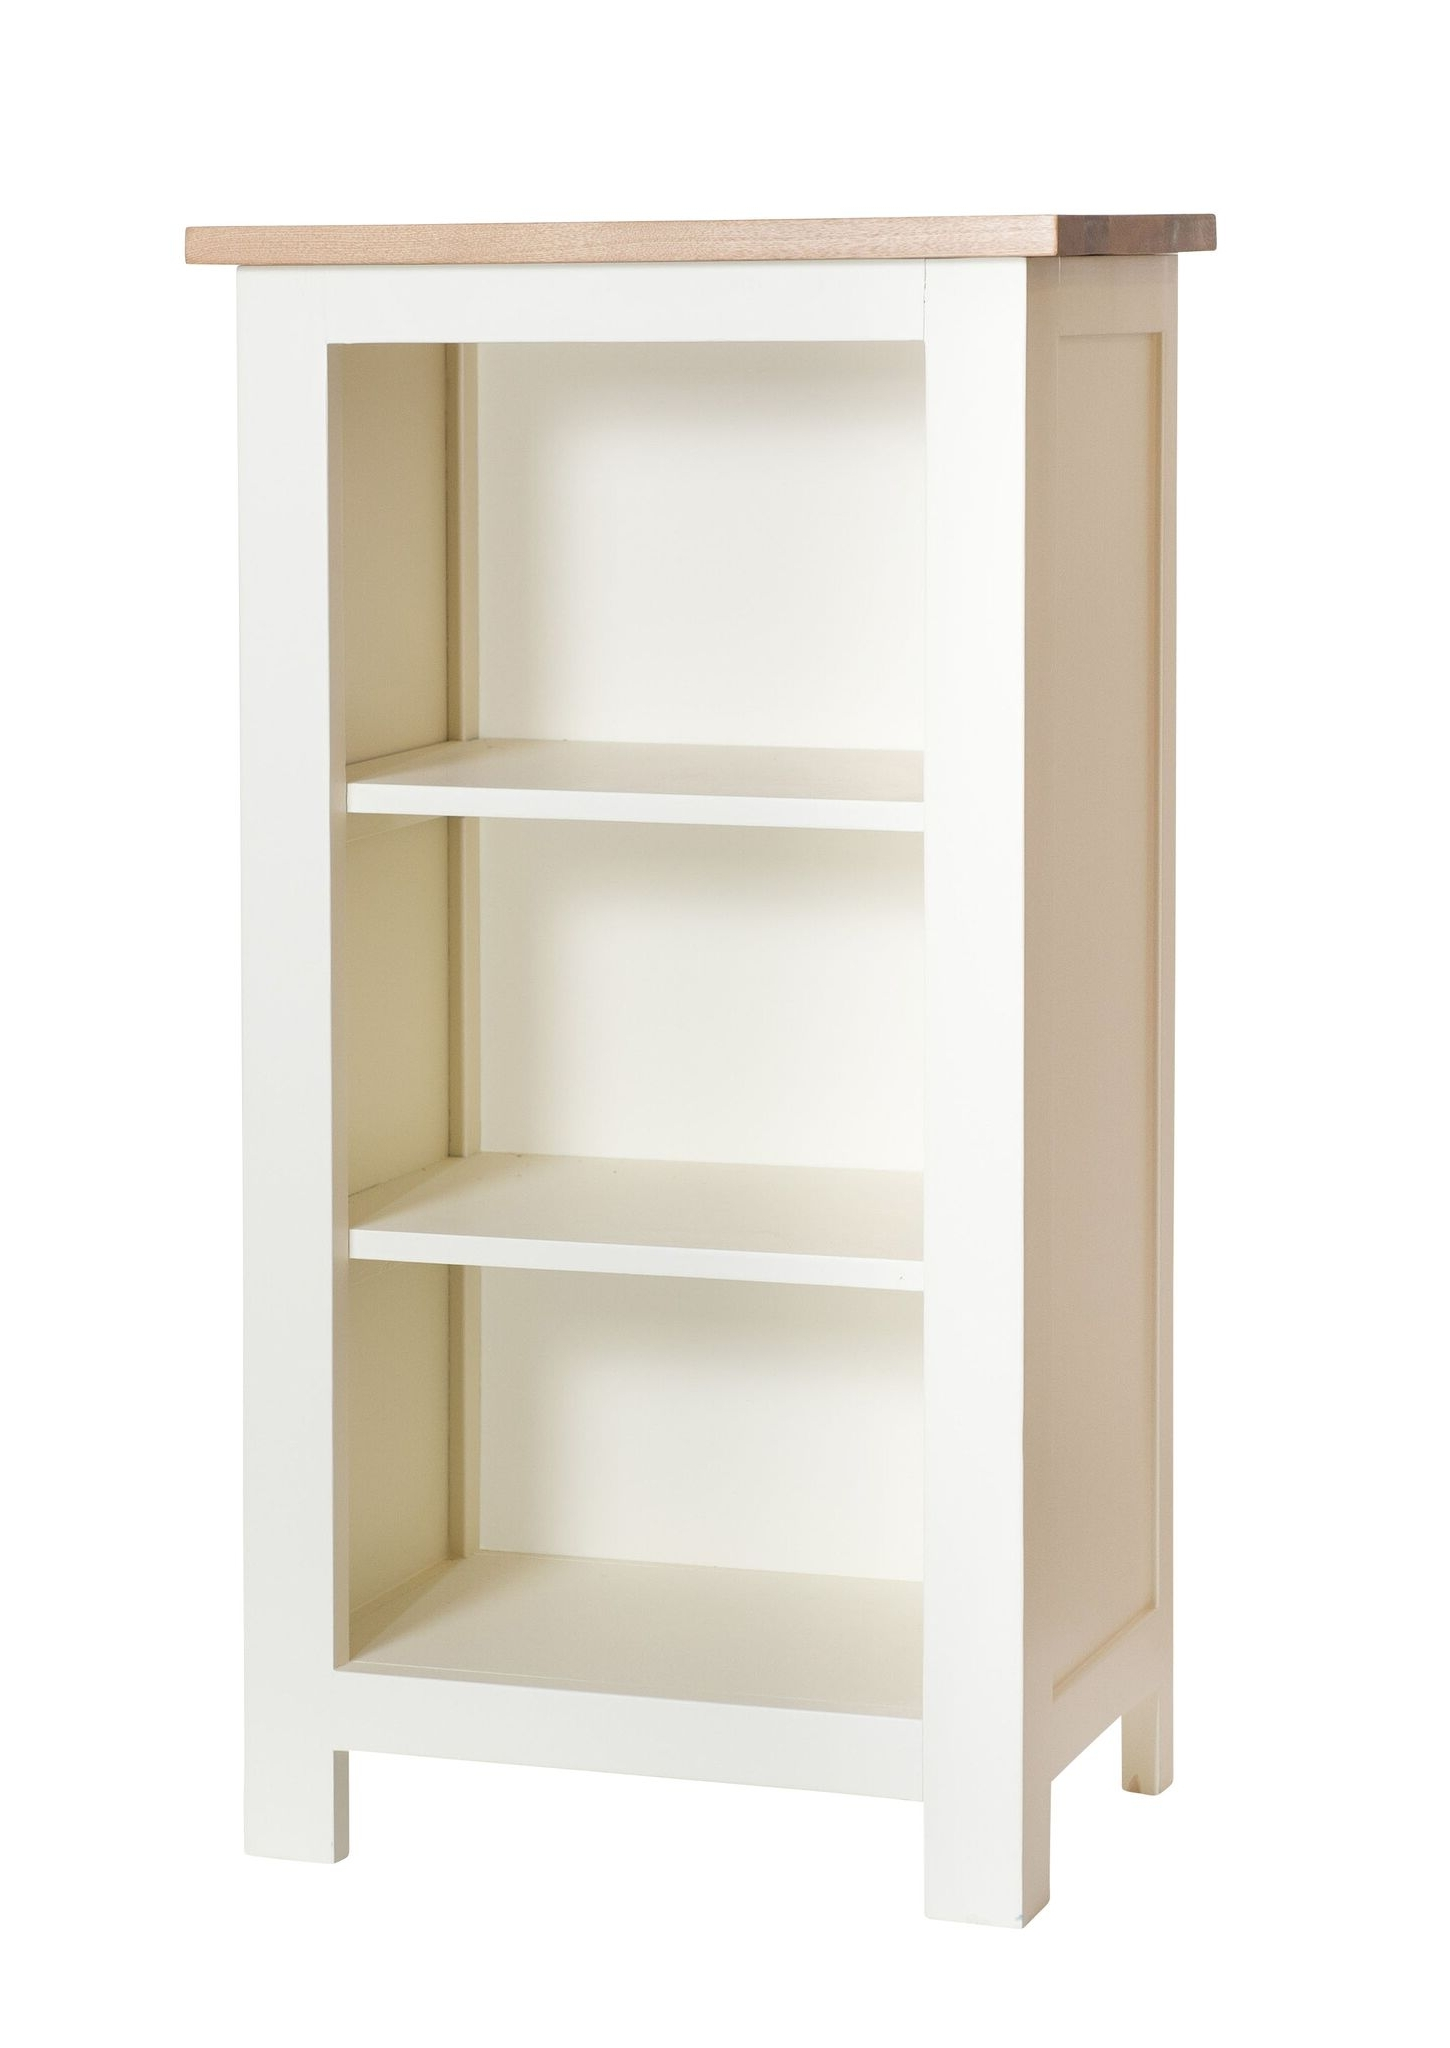 Best And Newest Painted Oak Bookcases Throughout So – Cream Painted Oak Top Small Bookcase – Country Furniture Barn (View 2 of 15)